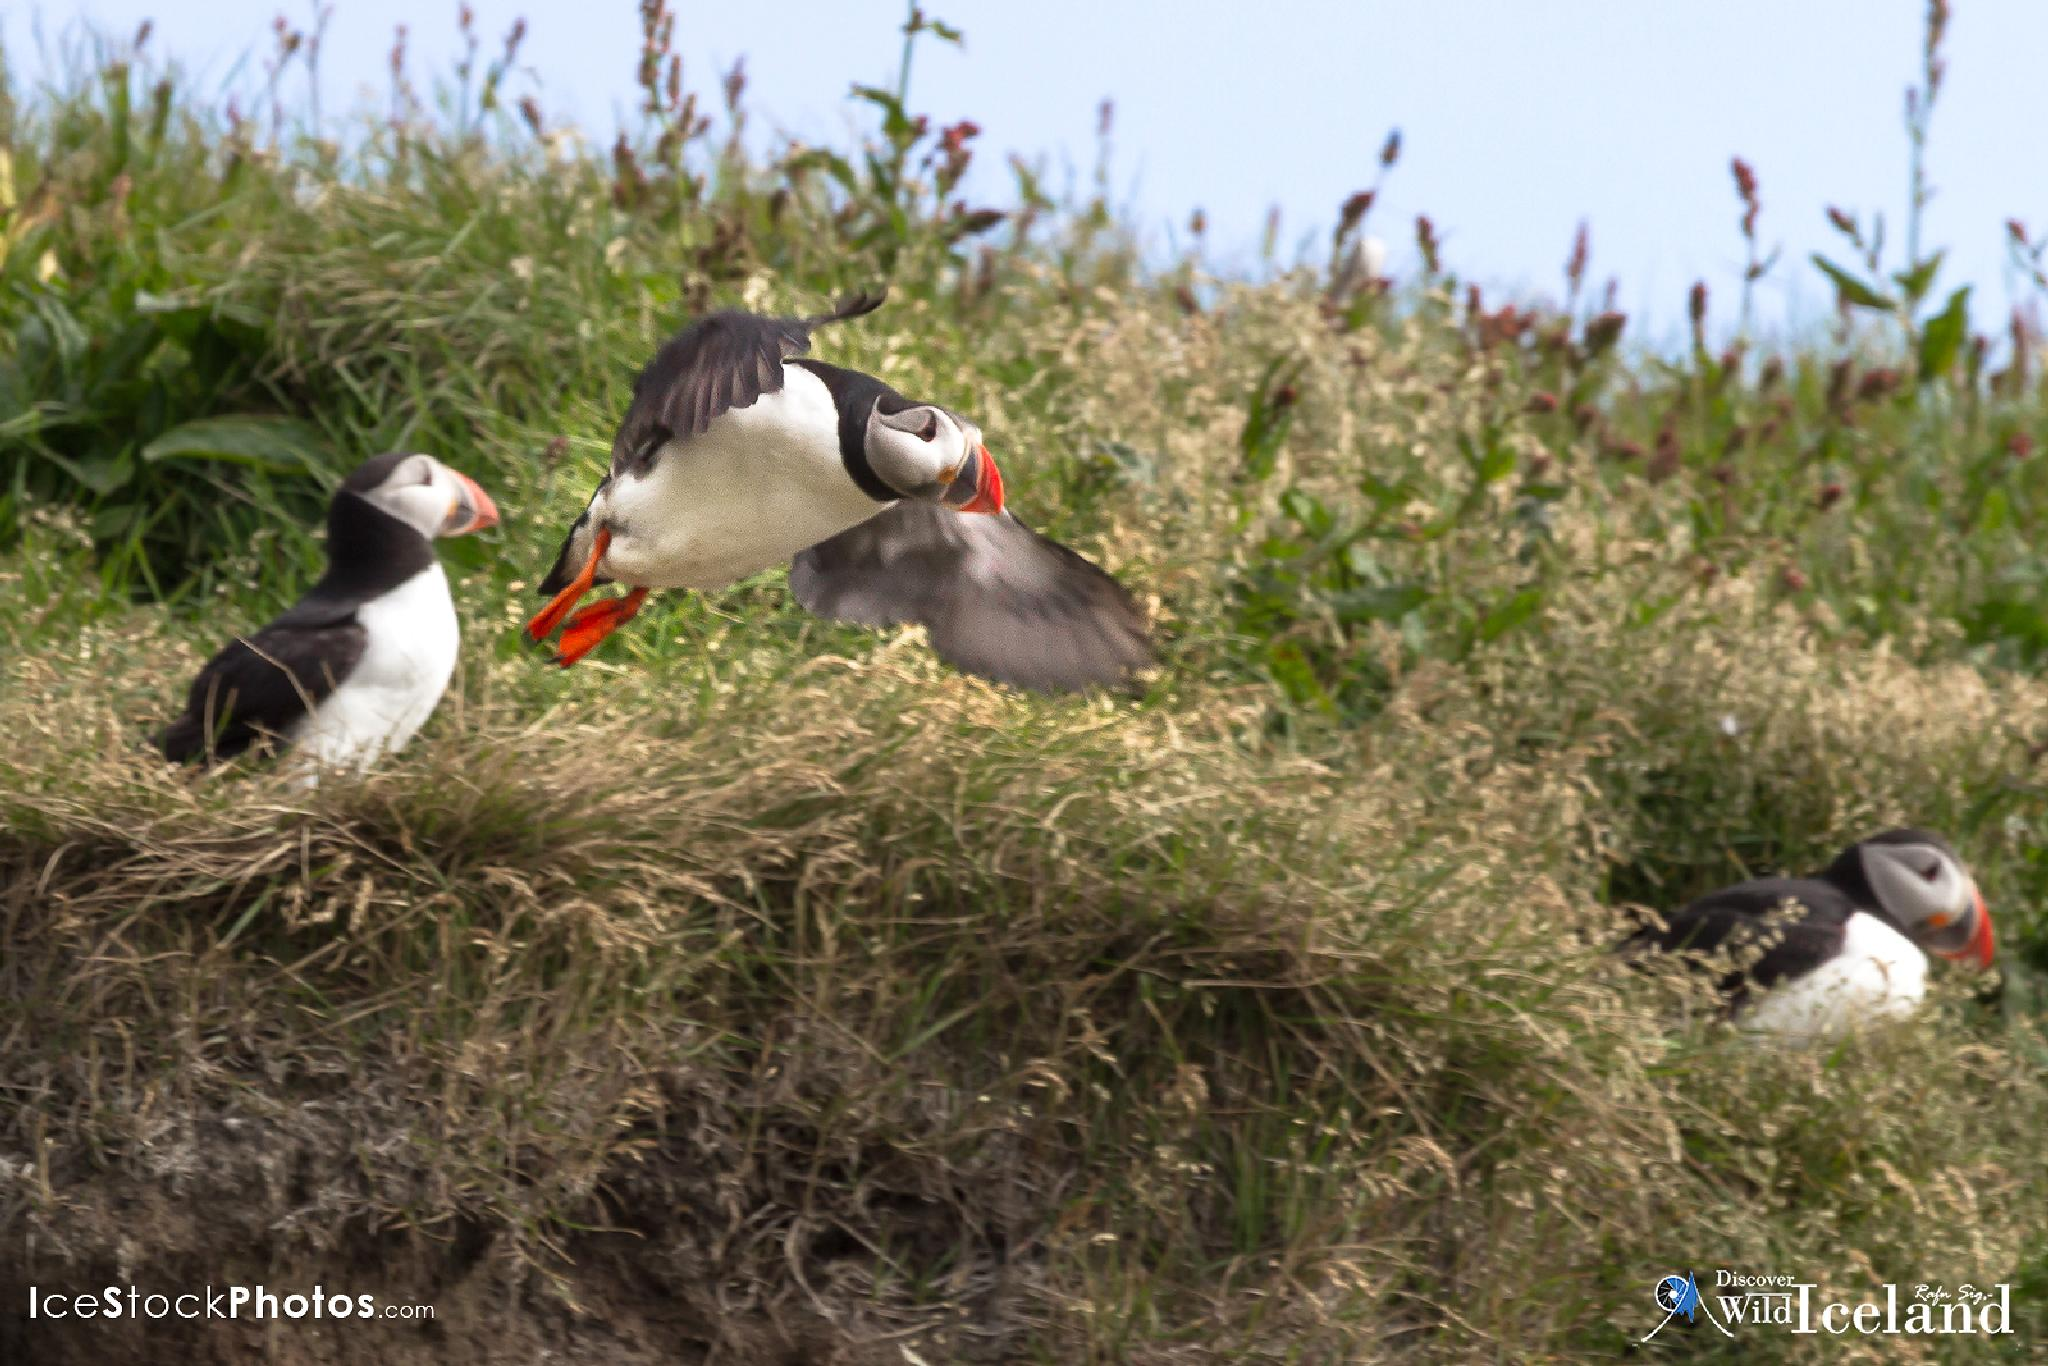 Discover Wild Iceland – Like the Puffins in Iceland by Rafn Sig,-  @ Discover Wild Iceland.com